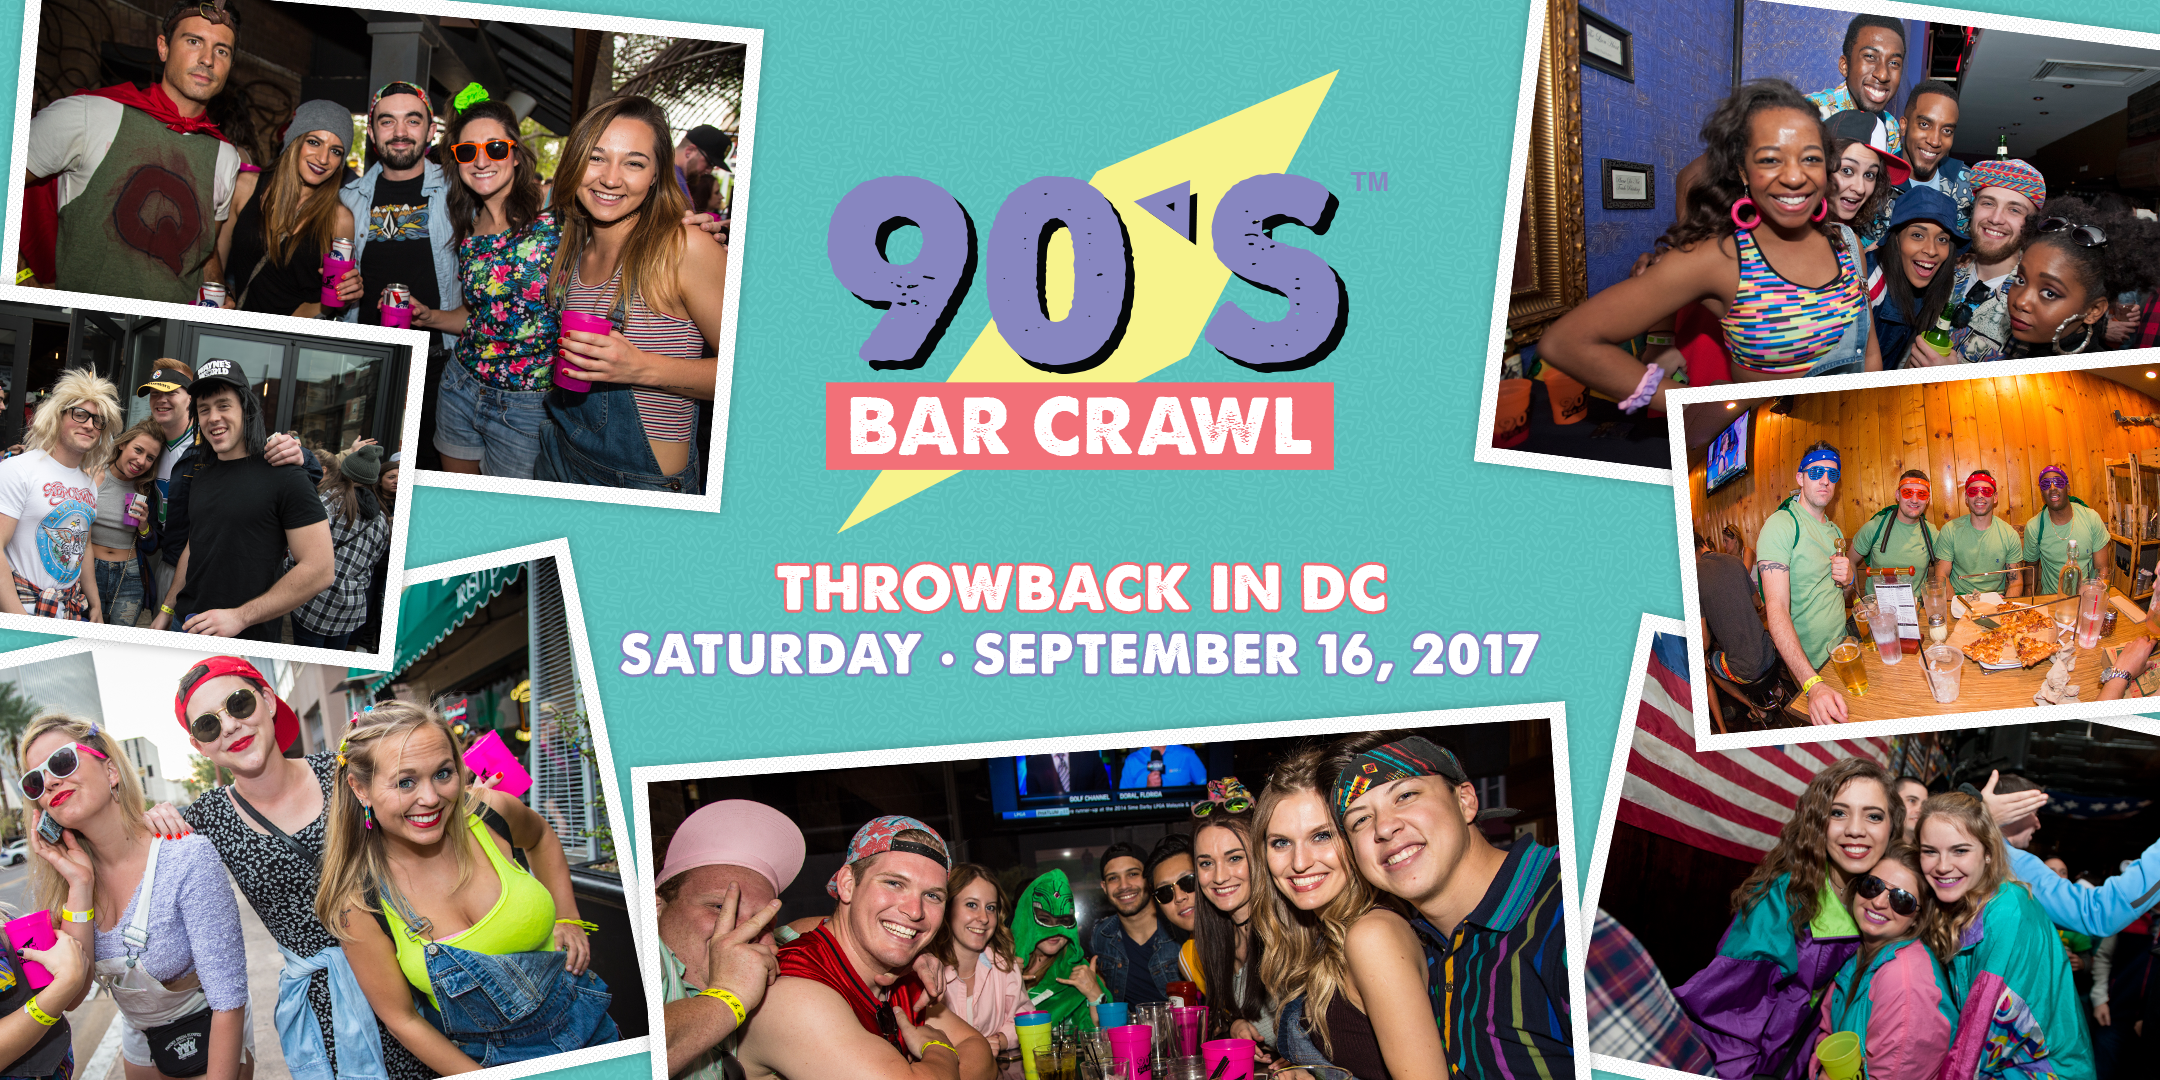 90s Bar Crawl - Washington, DC